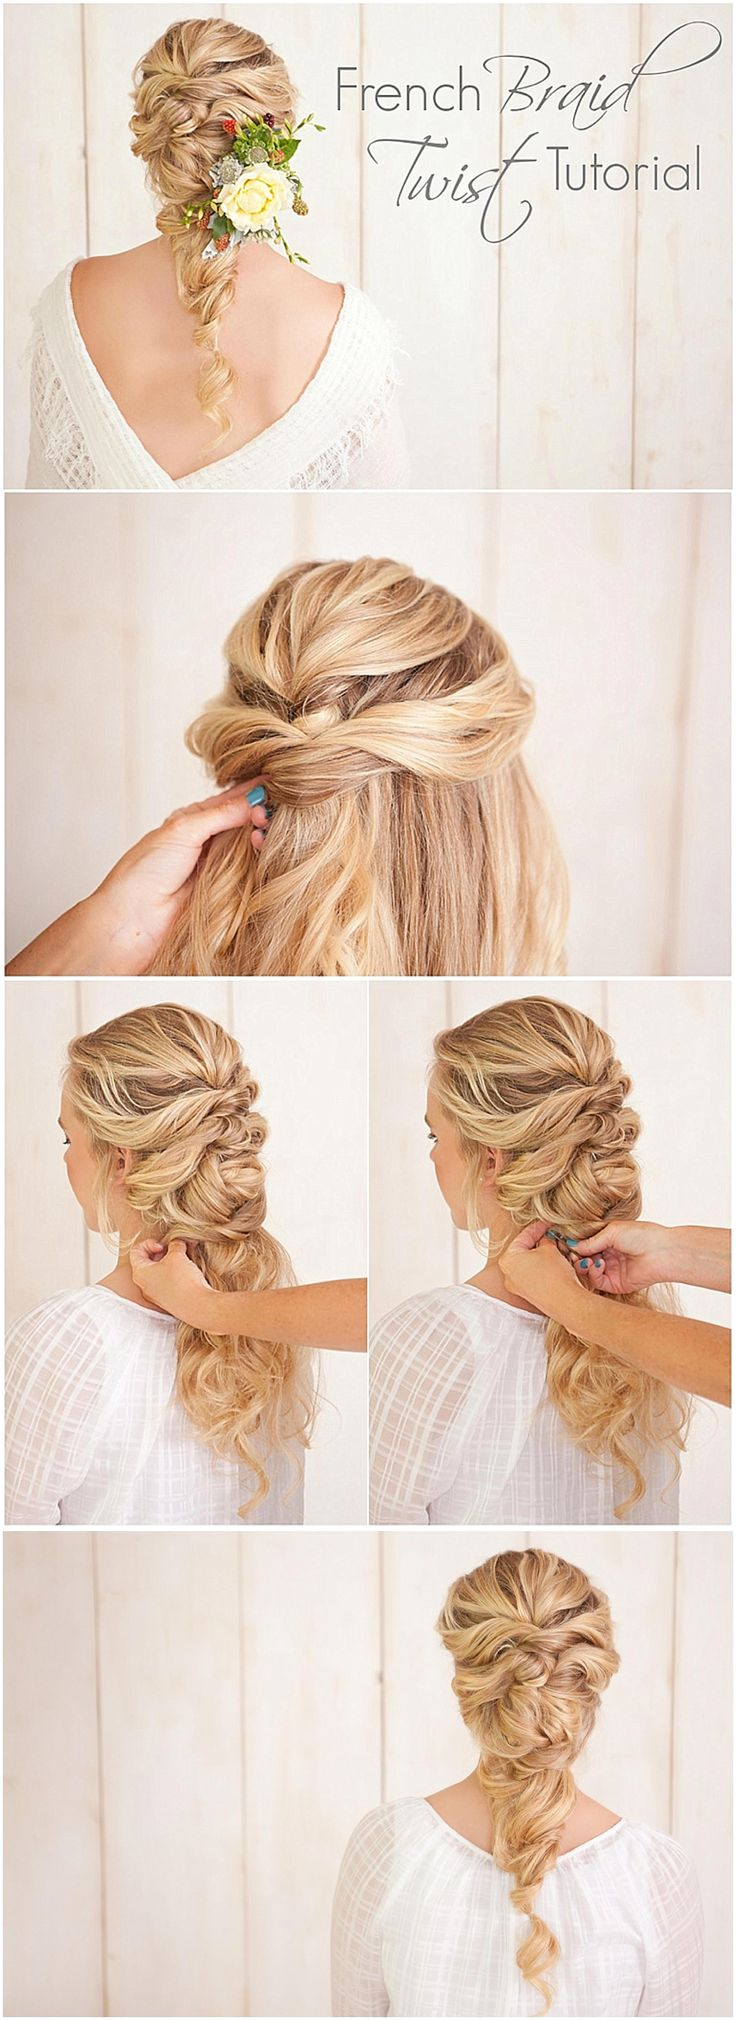 French braid twist tutorial. Love this wedding hairstyle idea! Click to see the ...